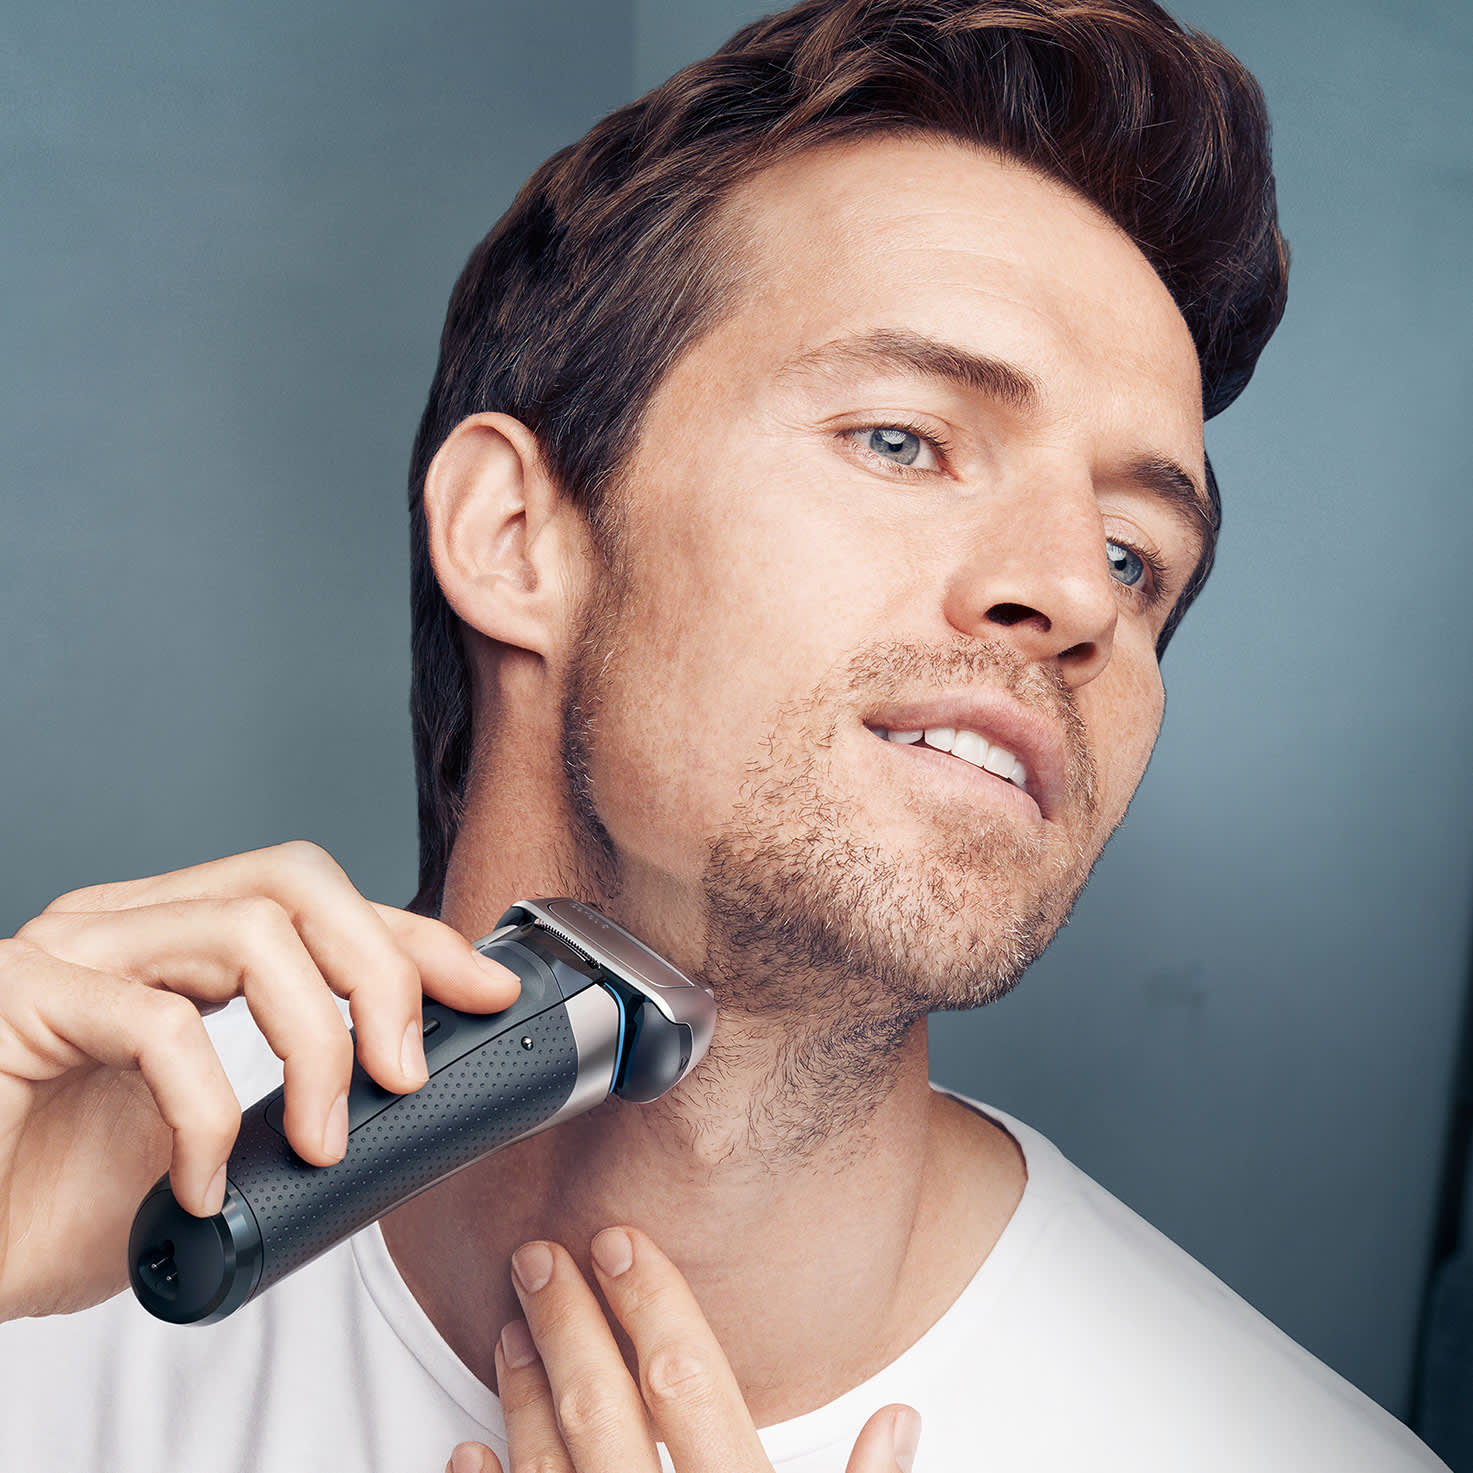 Series 8 8350s shaver - in use